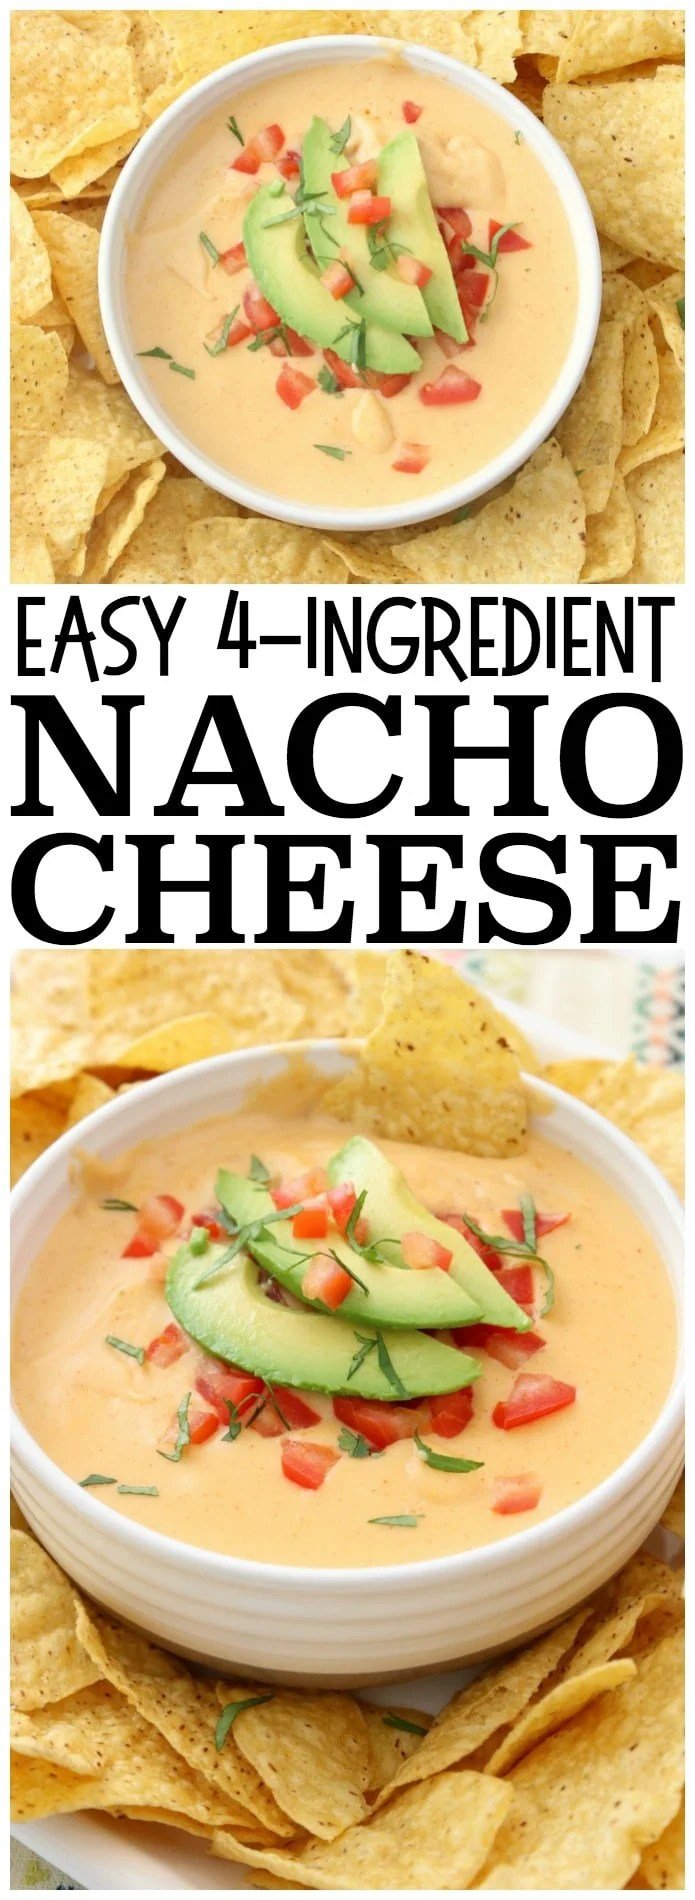 Easy Nacho Cheese sauce recipe with only 4 ingredients and is made in minutes! Smooth, creamy with great nacho cheese flavor, this appetizer recipe is perfect for parties, busy weeknight dinners and game day food!